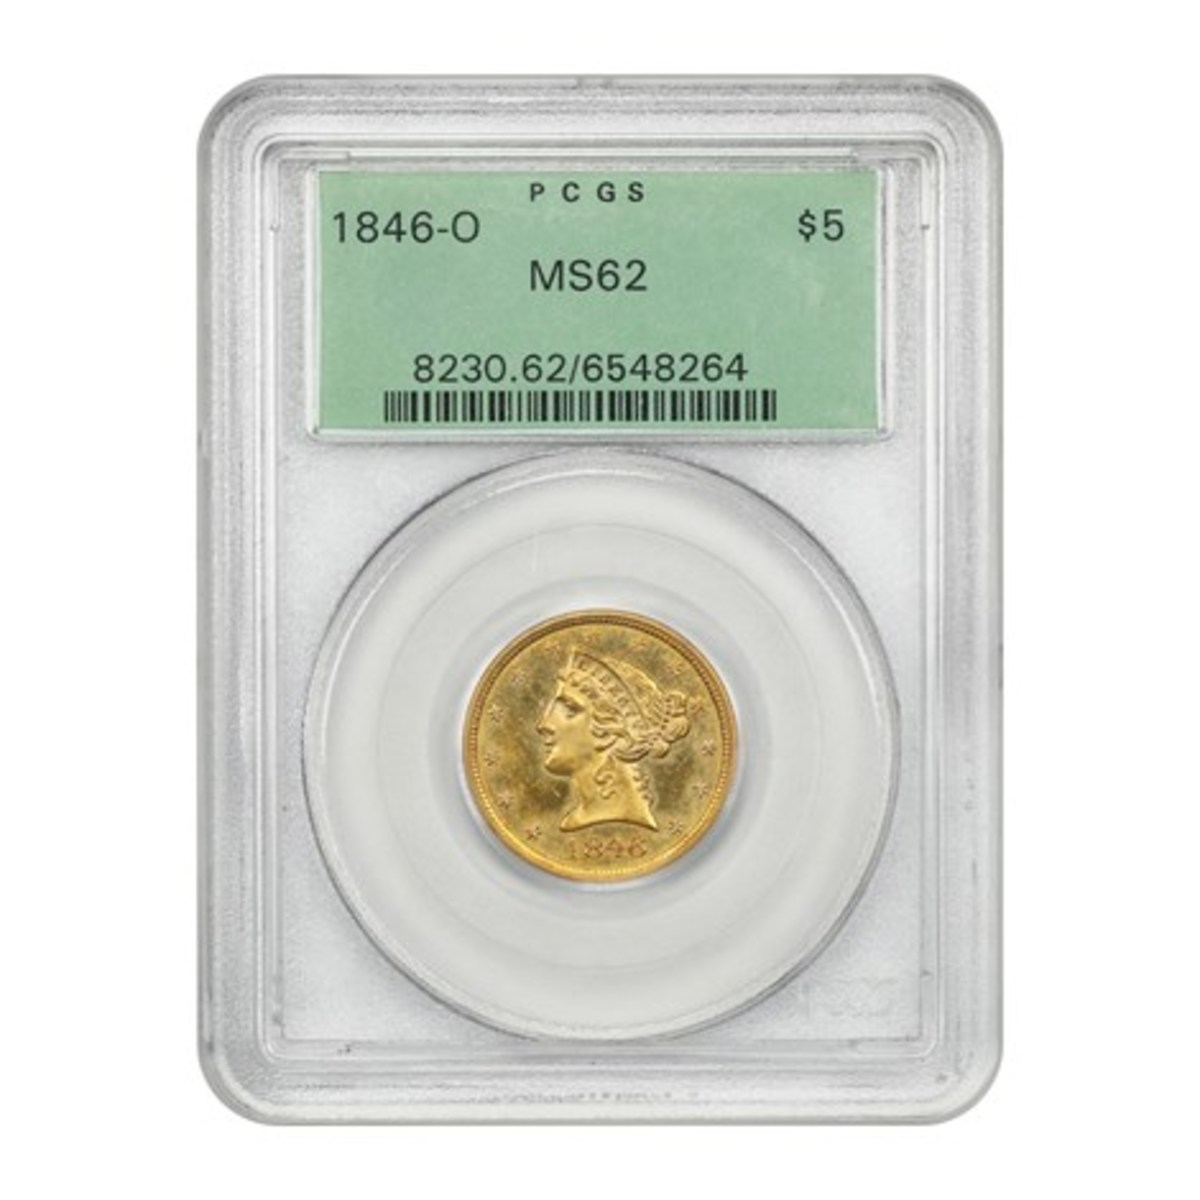 1846-O $5 gold graded MS-62 by PCGS.